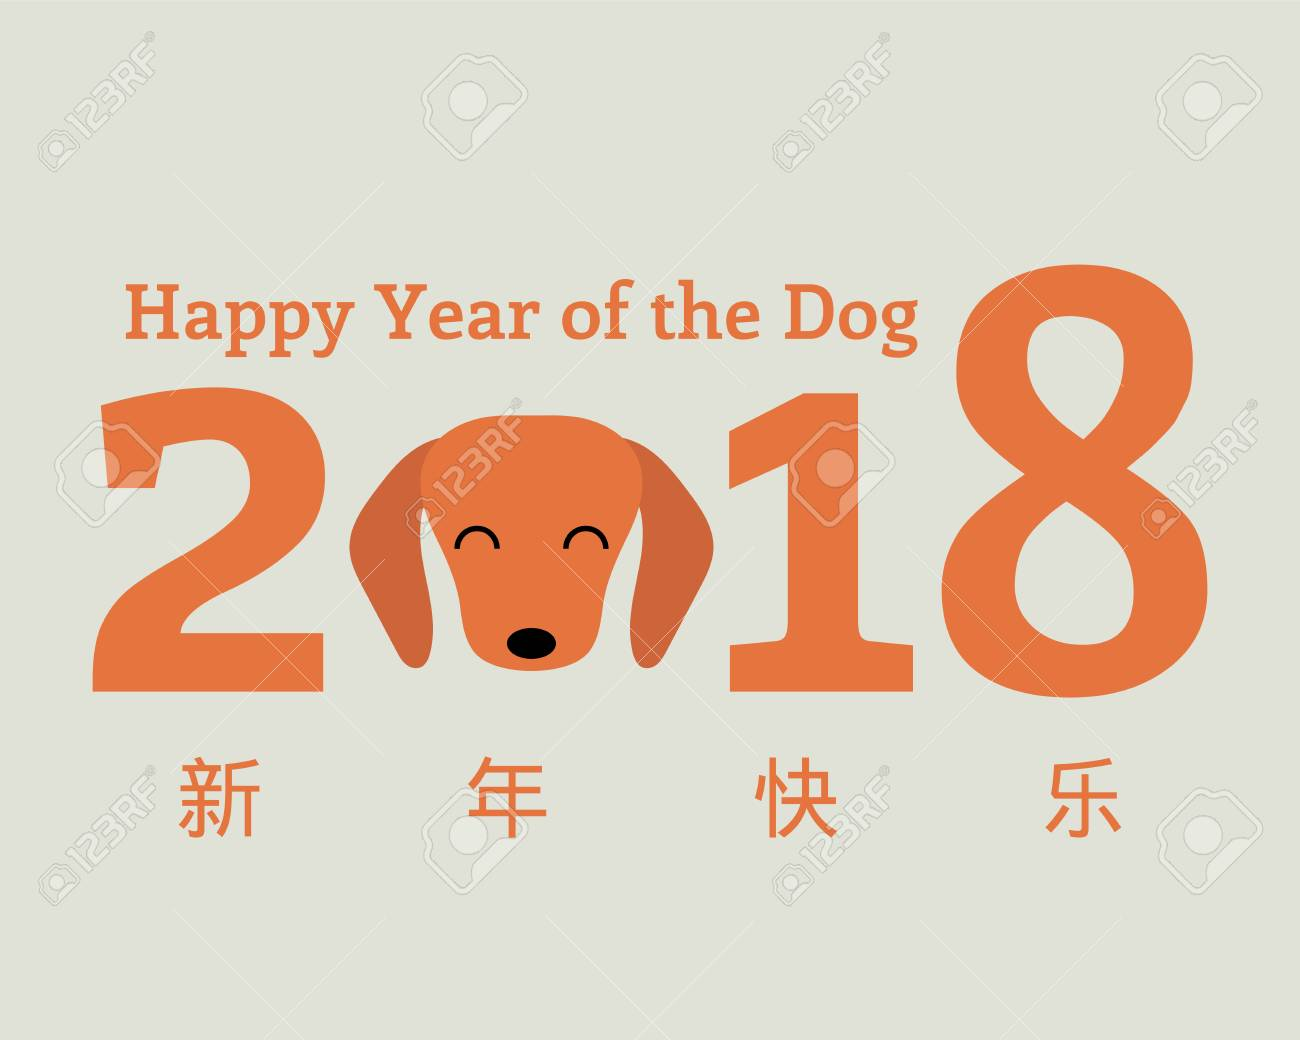 2018 chinese new year greeting card banner with cute funny cartoon 2018 chinese new year greeting card banner with cute funny cartoon dog head numbers m4hsunfo